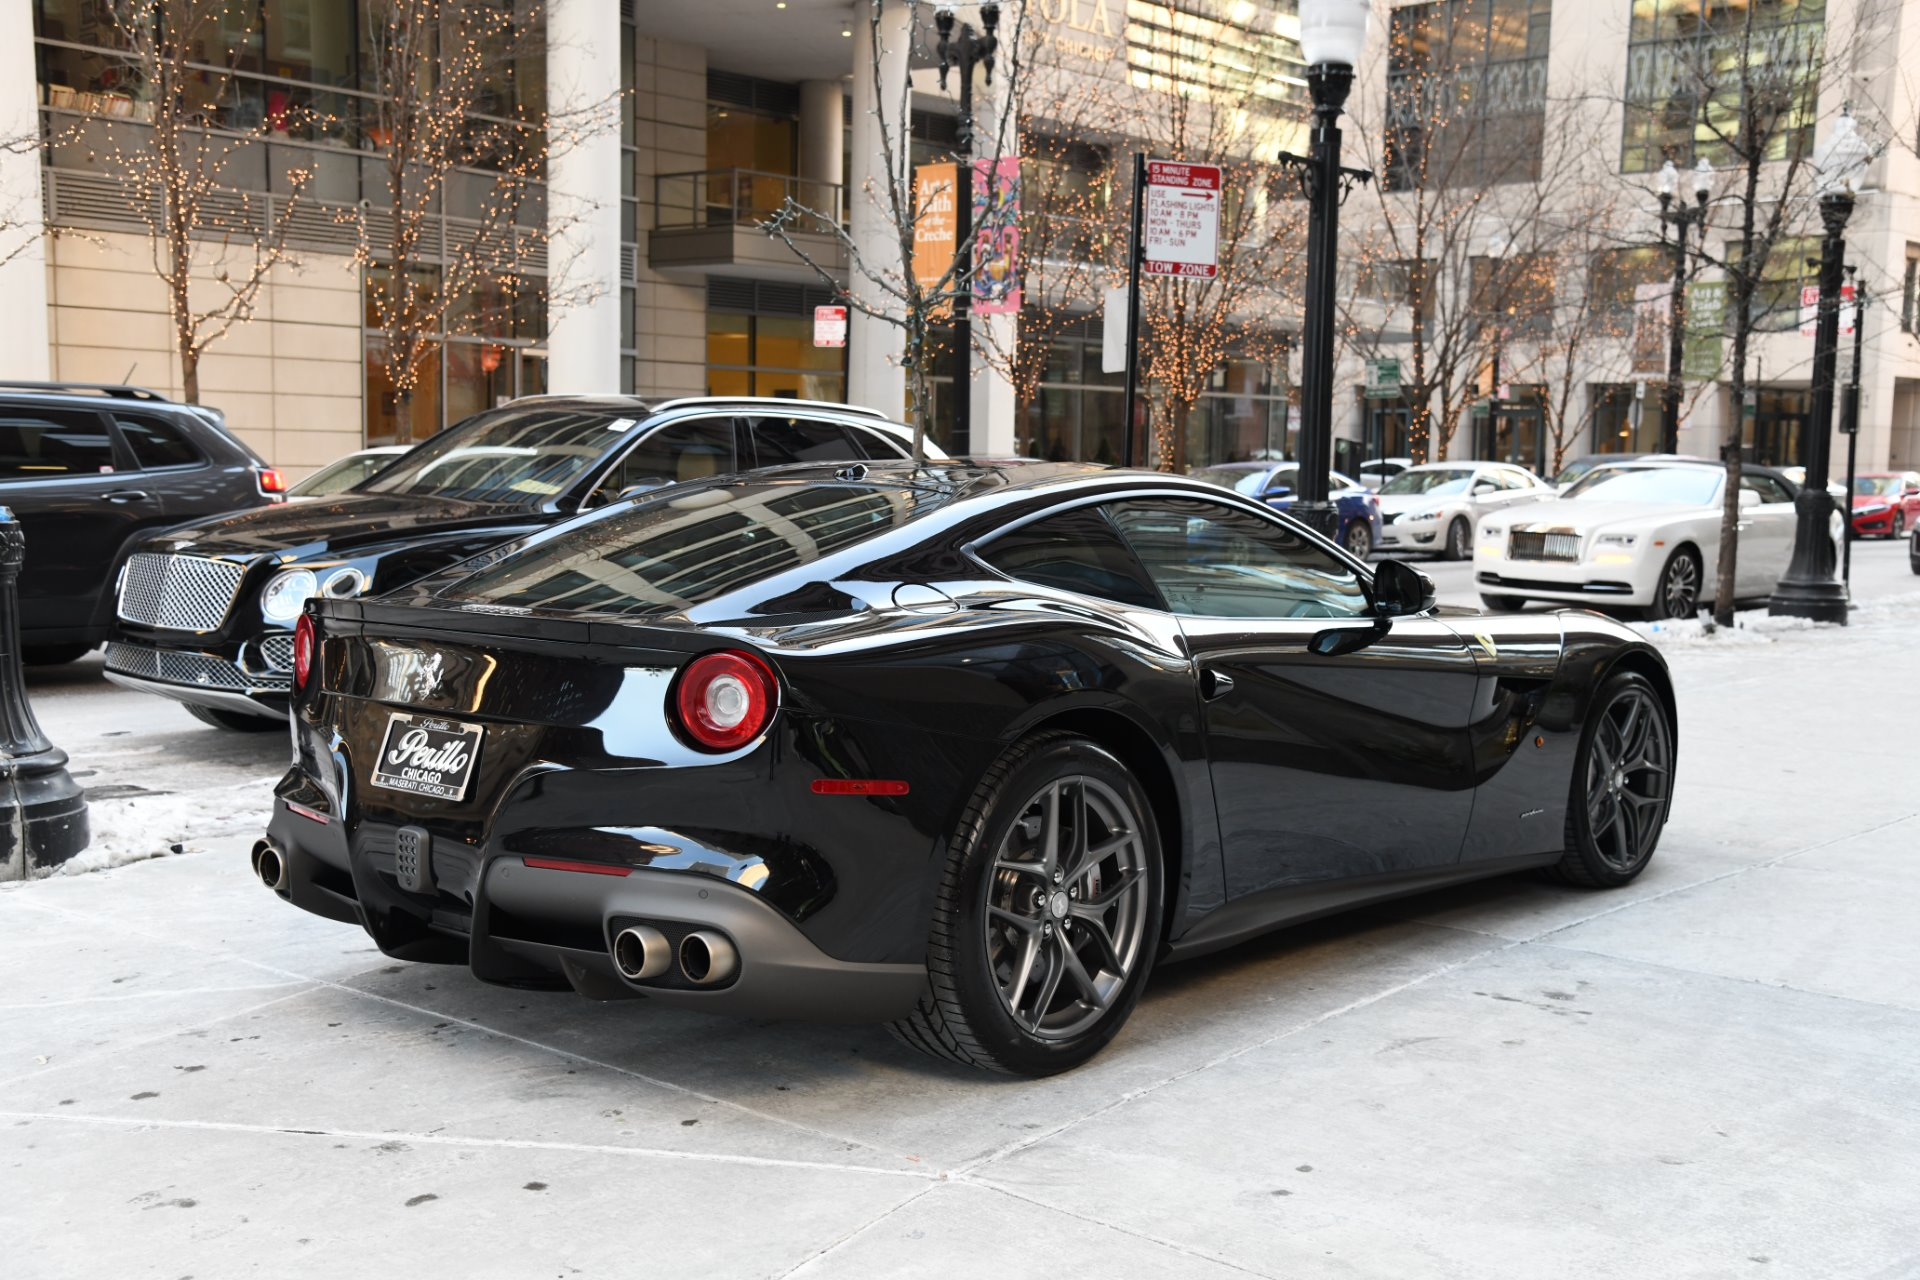 2017 ferrari f12 berlinetta stock gc2212aa for sale near chicago il il ferrari dealer. Black Bedroom Furniture Sets. Home Design Ideas